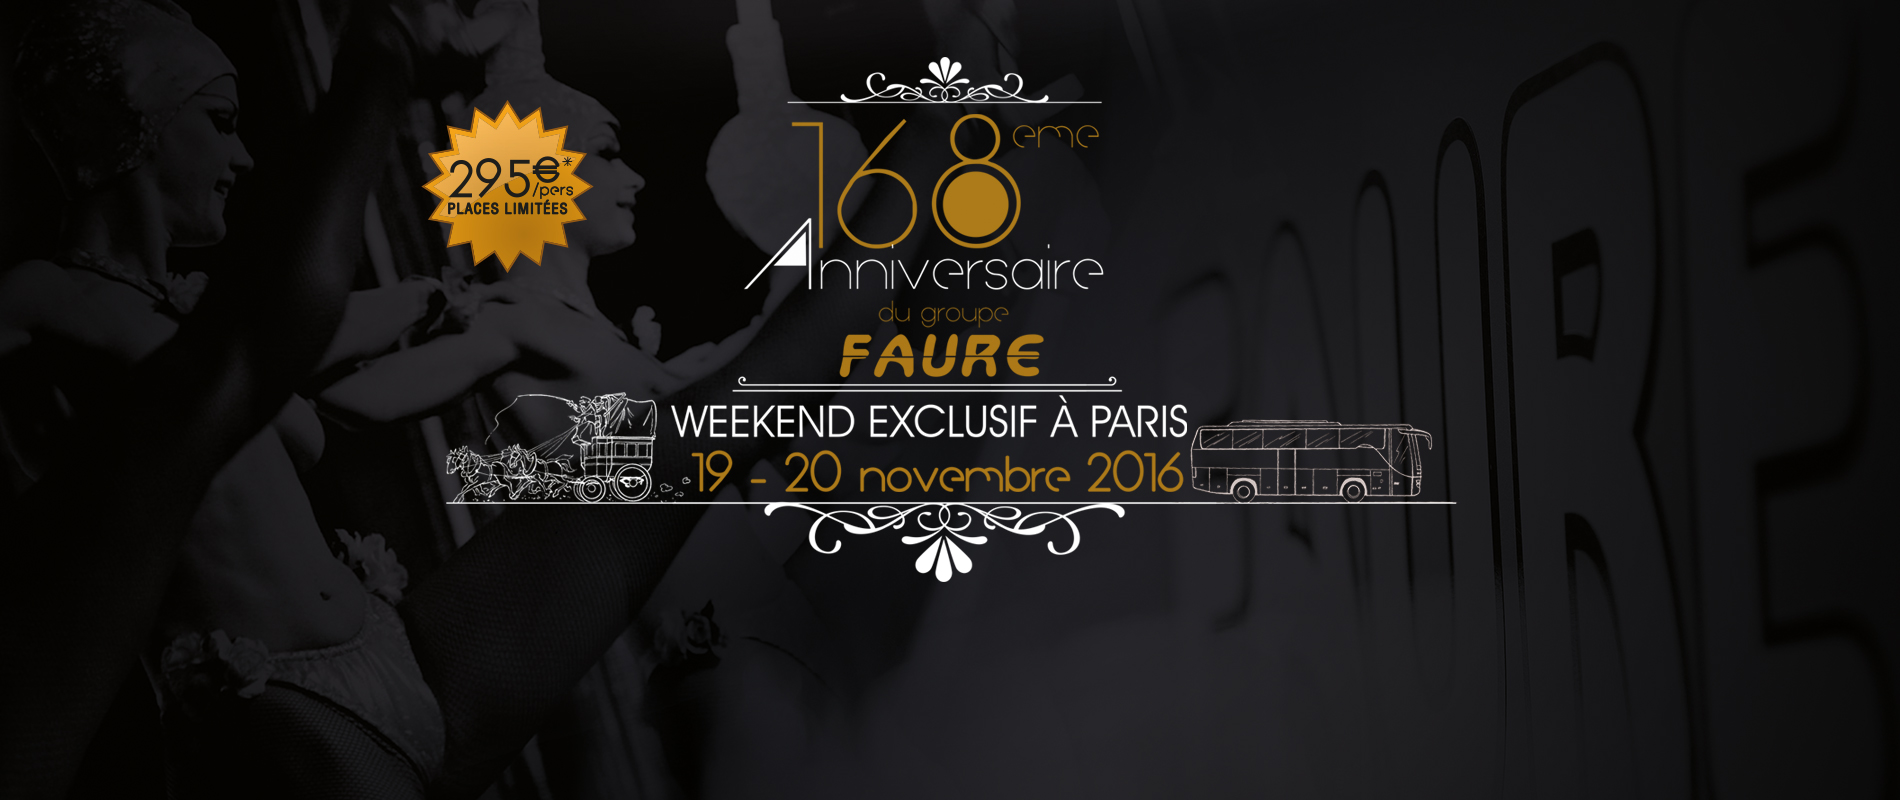 WEEK-END EXCLUSIF A PARIS 168 ANS à partir de 295 € TTC